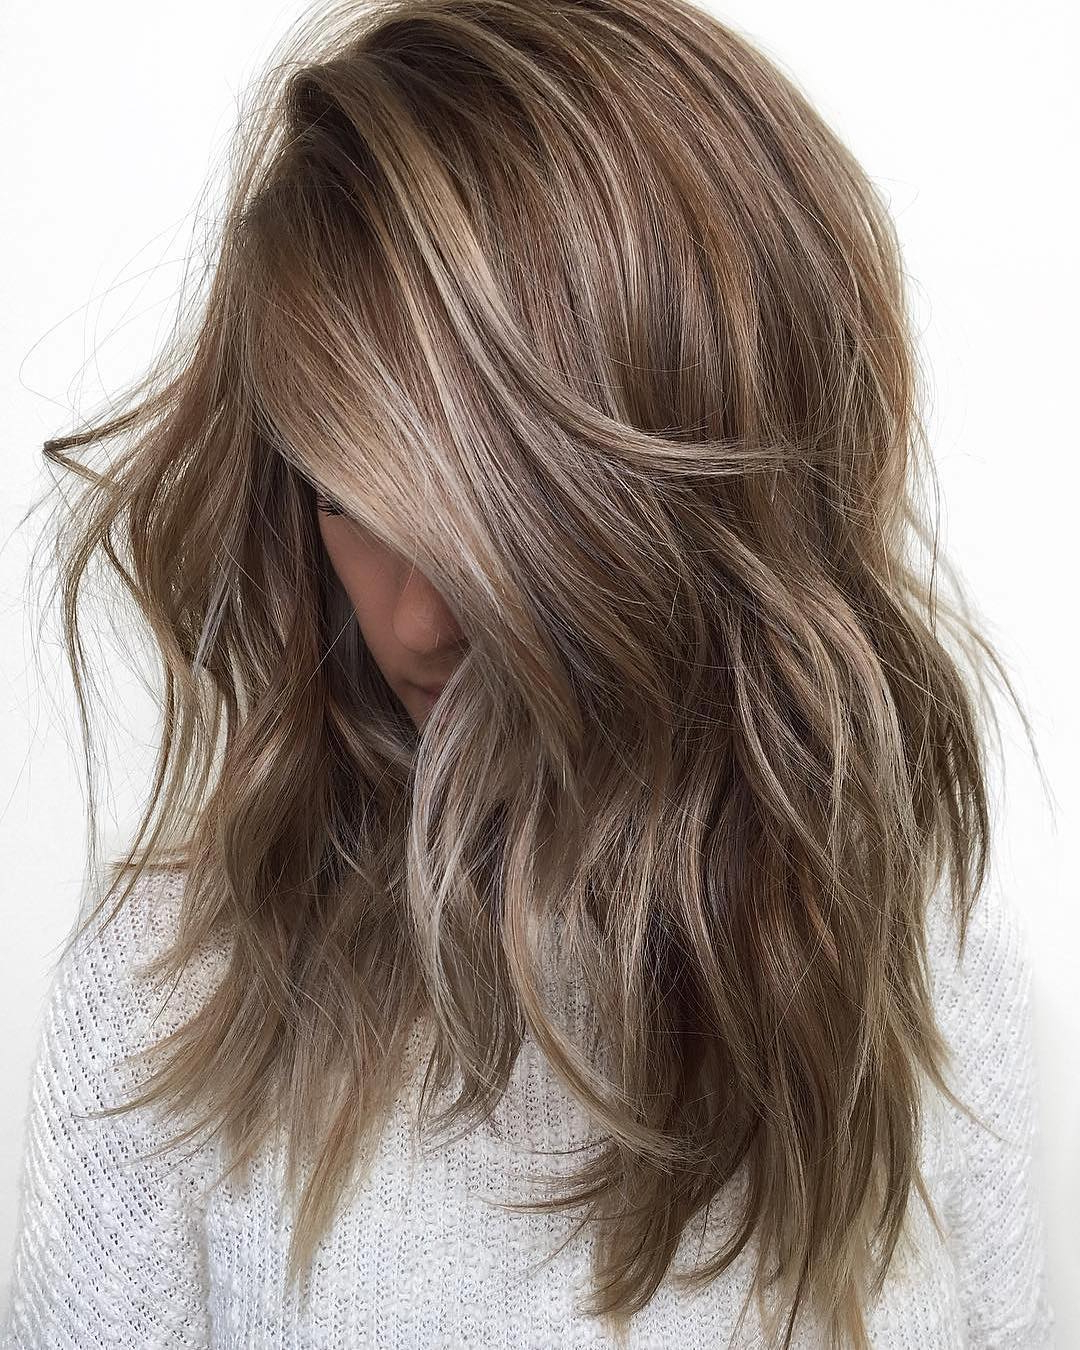 10 Balayage Ombre Hair Styles For Shoulder Length Hair, Women Throughout Chic Chocolate Layers Hairstyles (View 1 of 20)